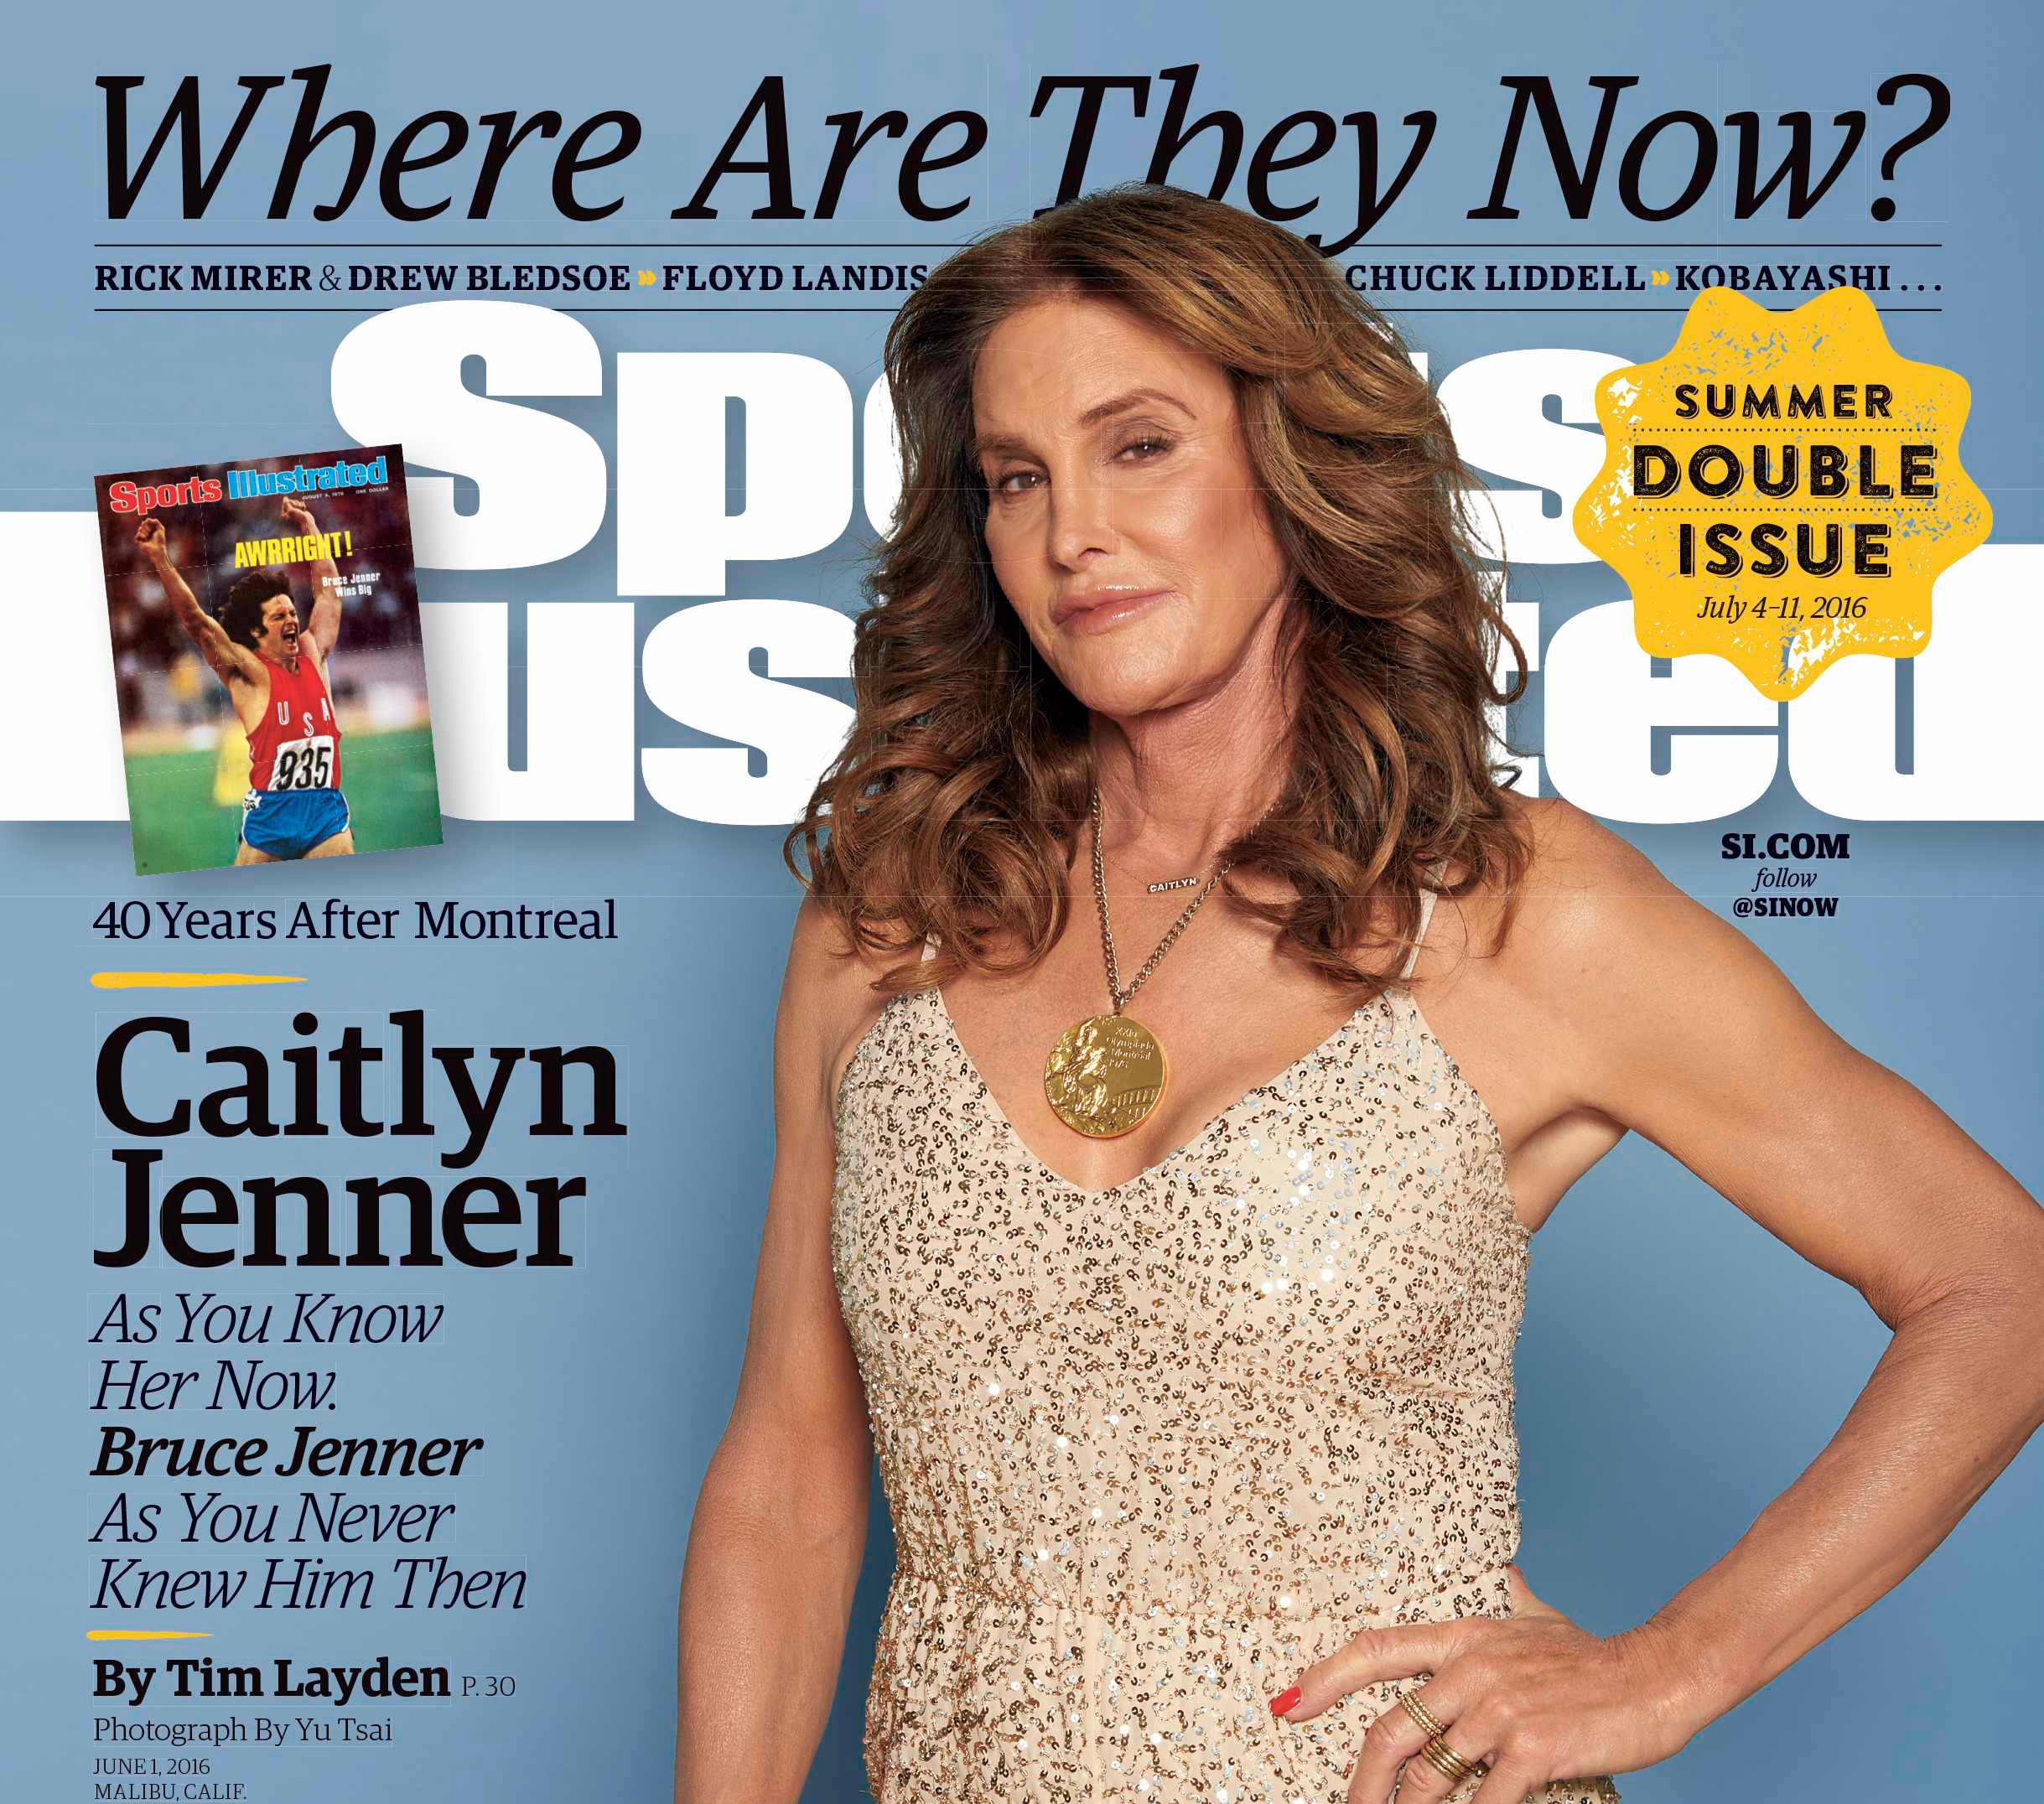 Caitlyn Jenner Poses Nude on Sports Illustrated Cover